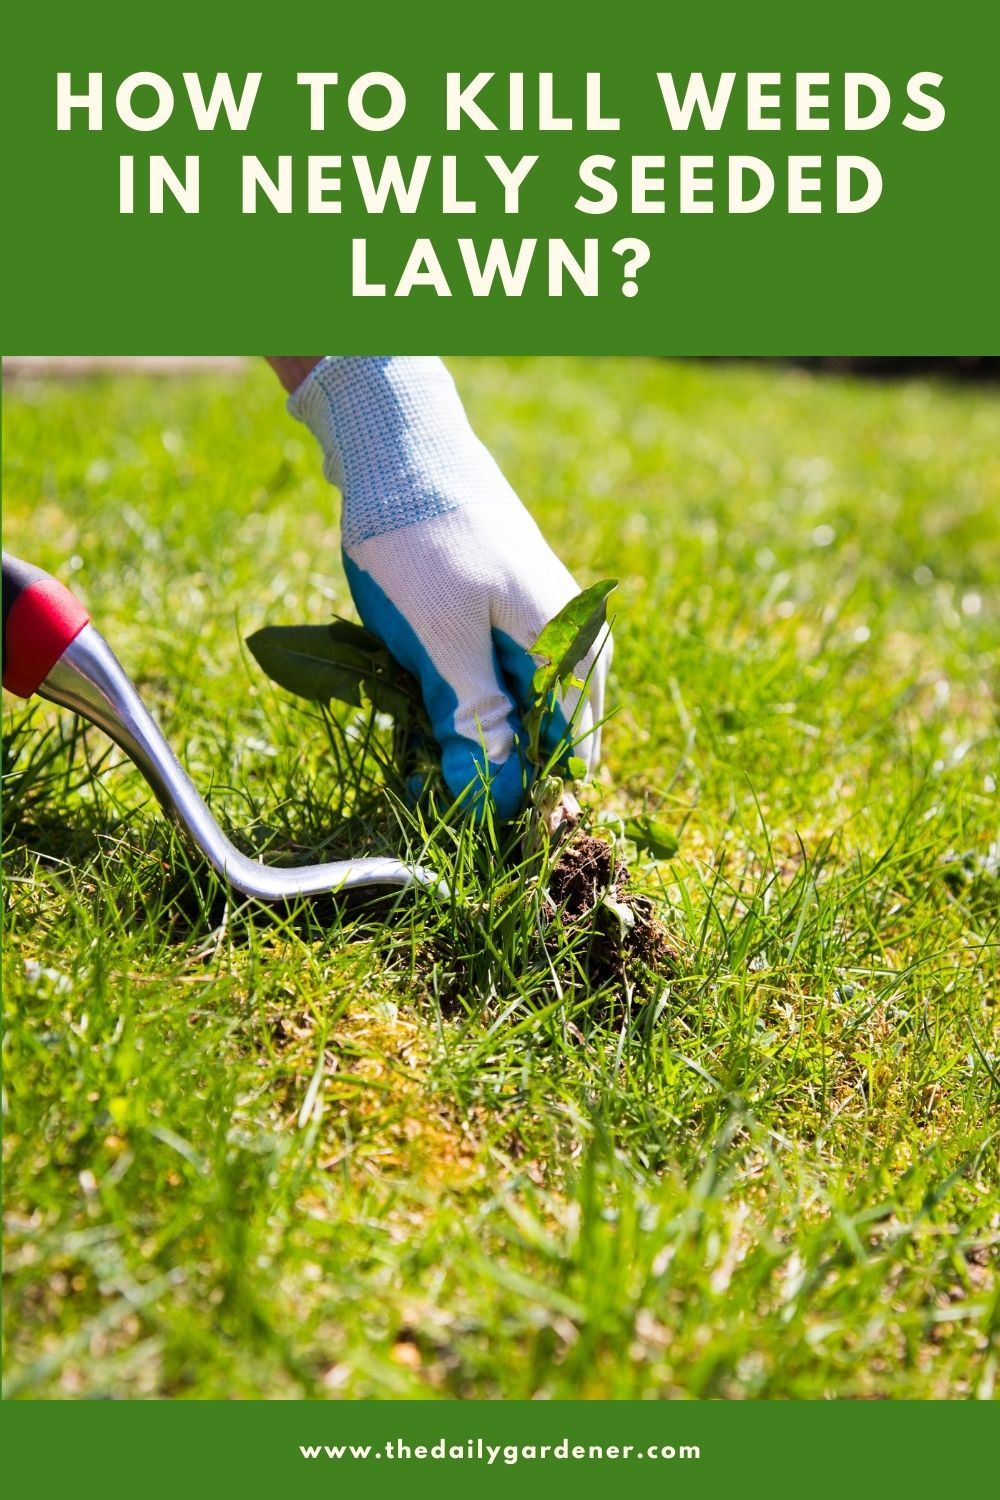 How to Kill Weeds in Newly Seeded Lawn 1